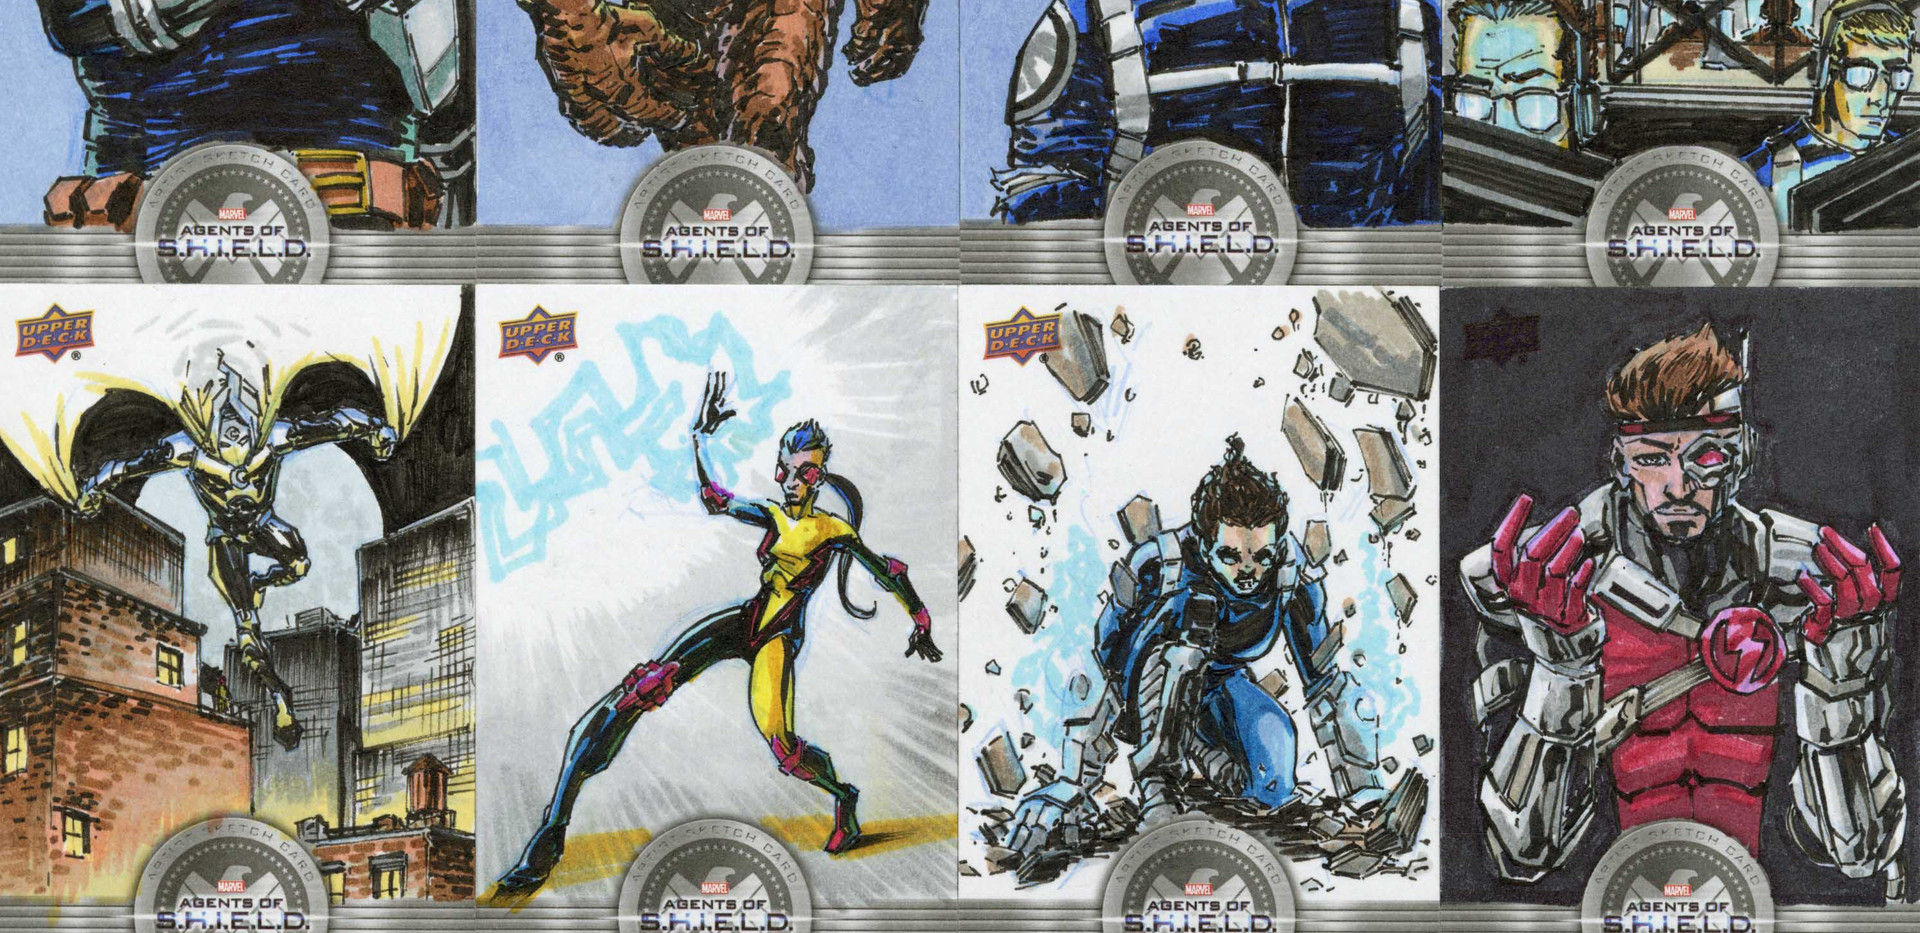 Upper Deck Agents of Shield